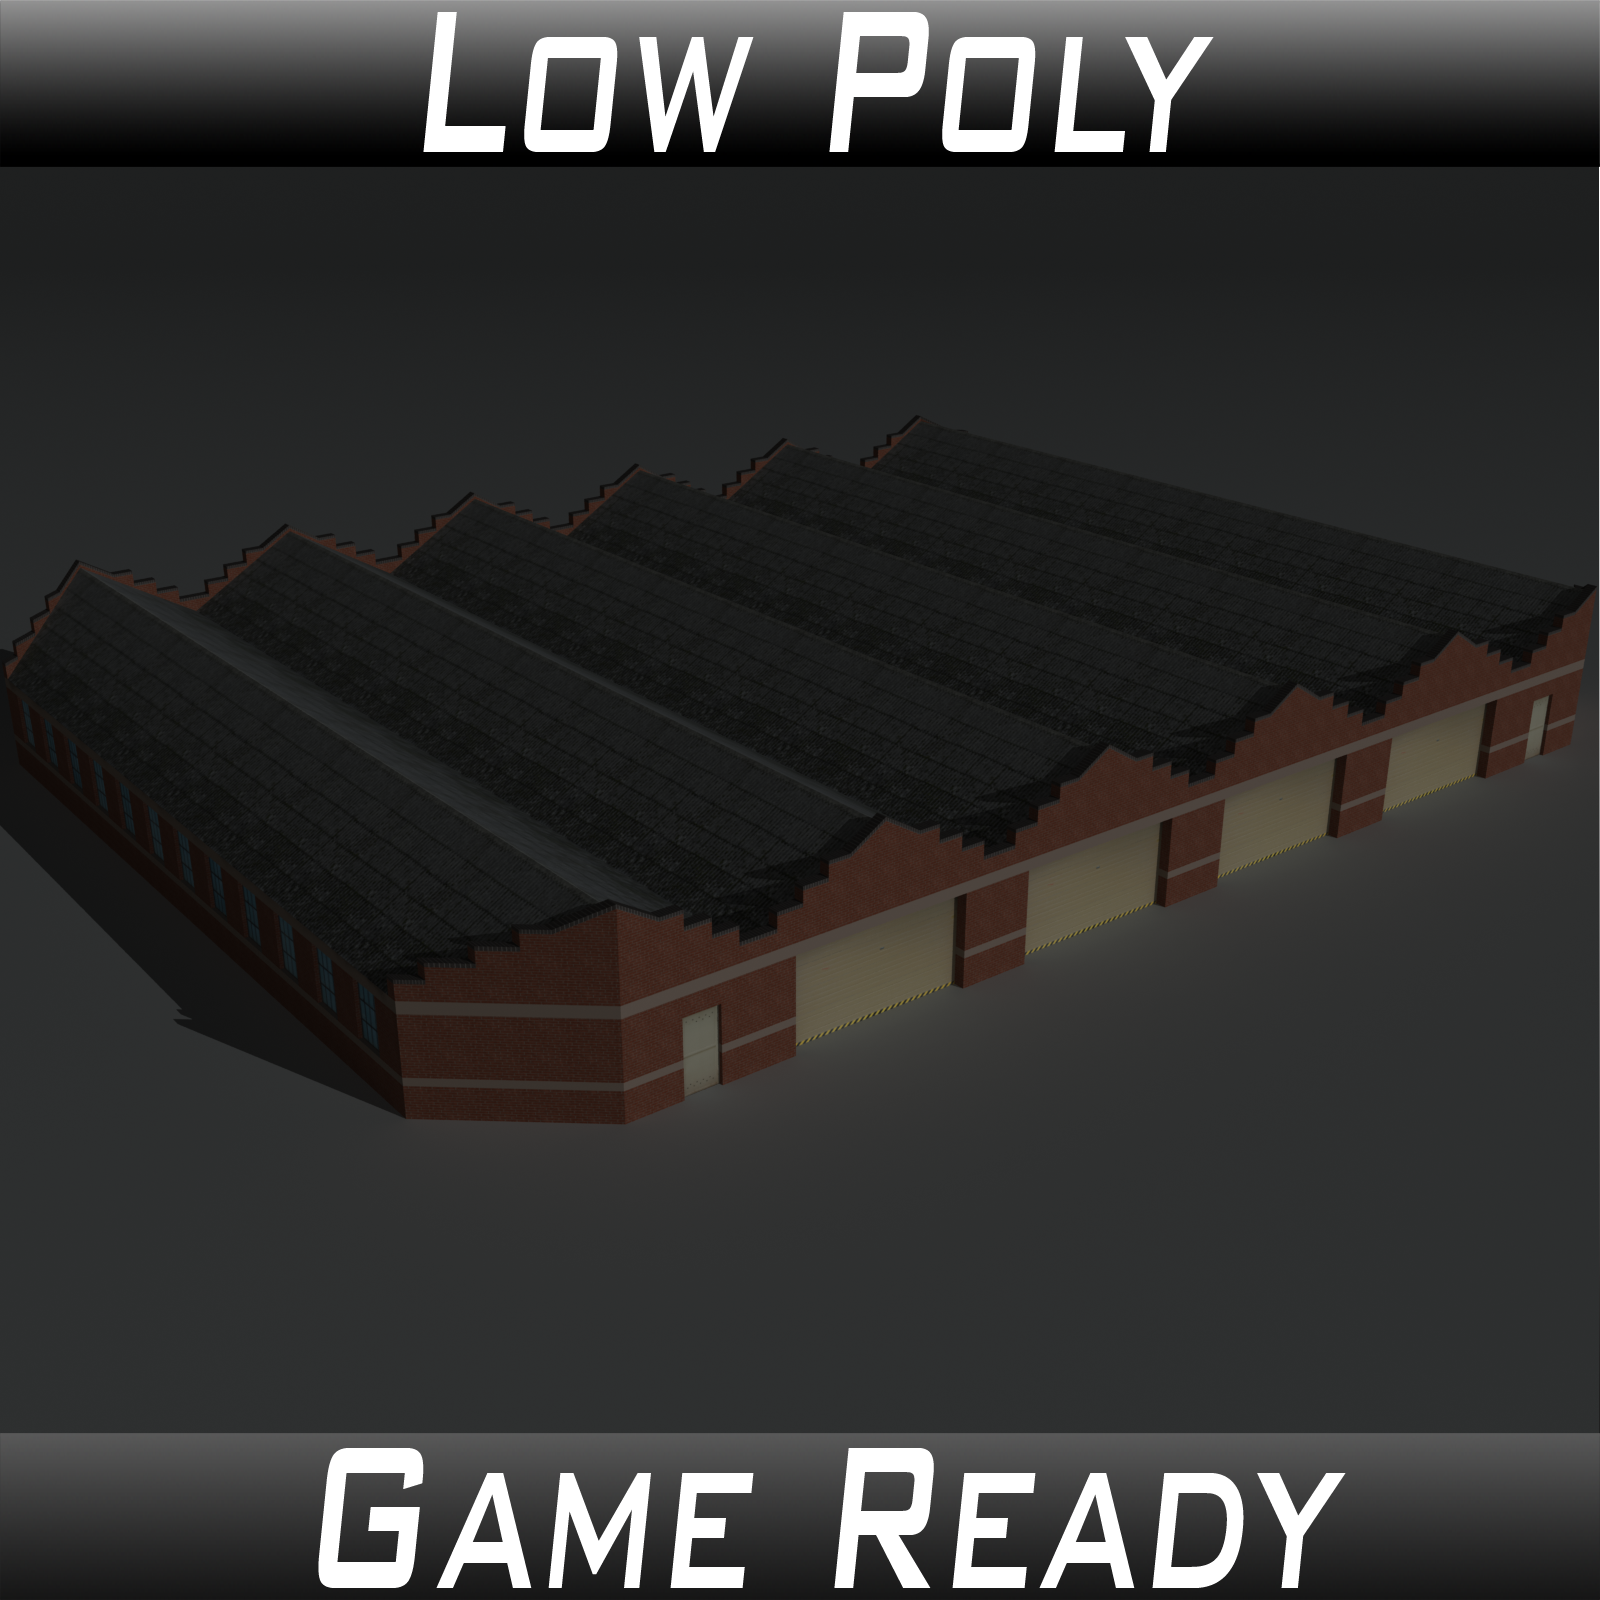 Low Poly Factory Building 12 - Extended Licence by 3dlands